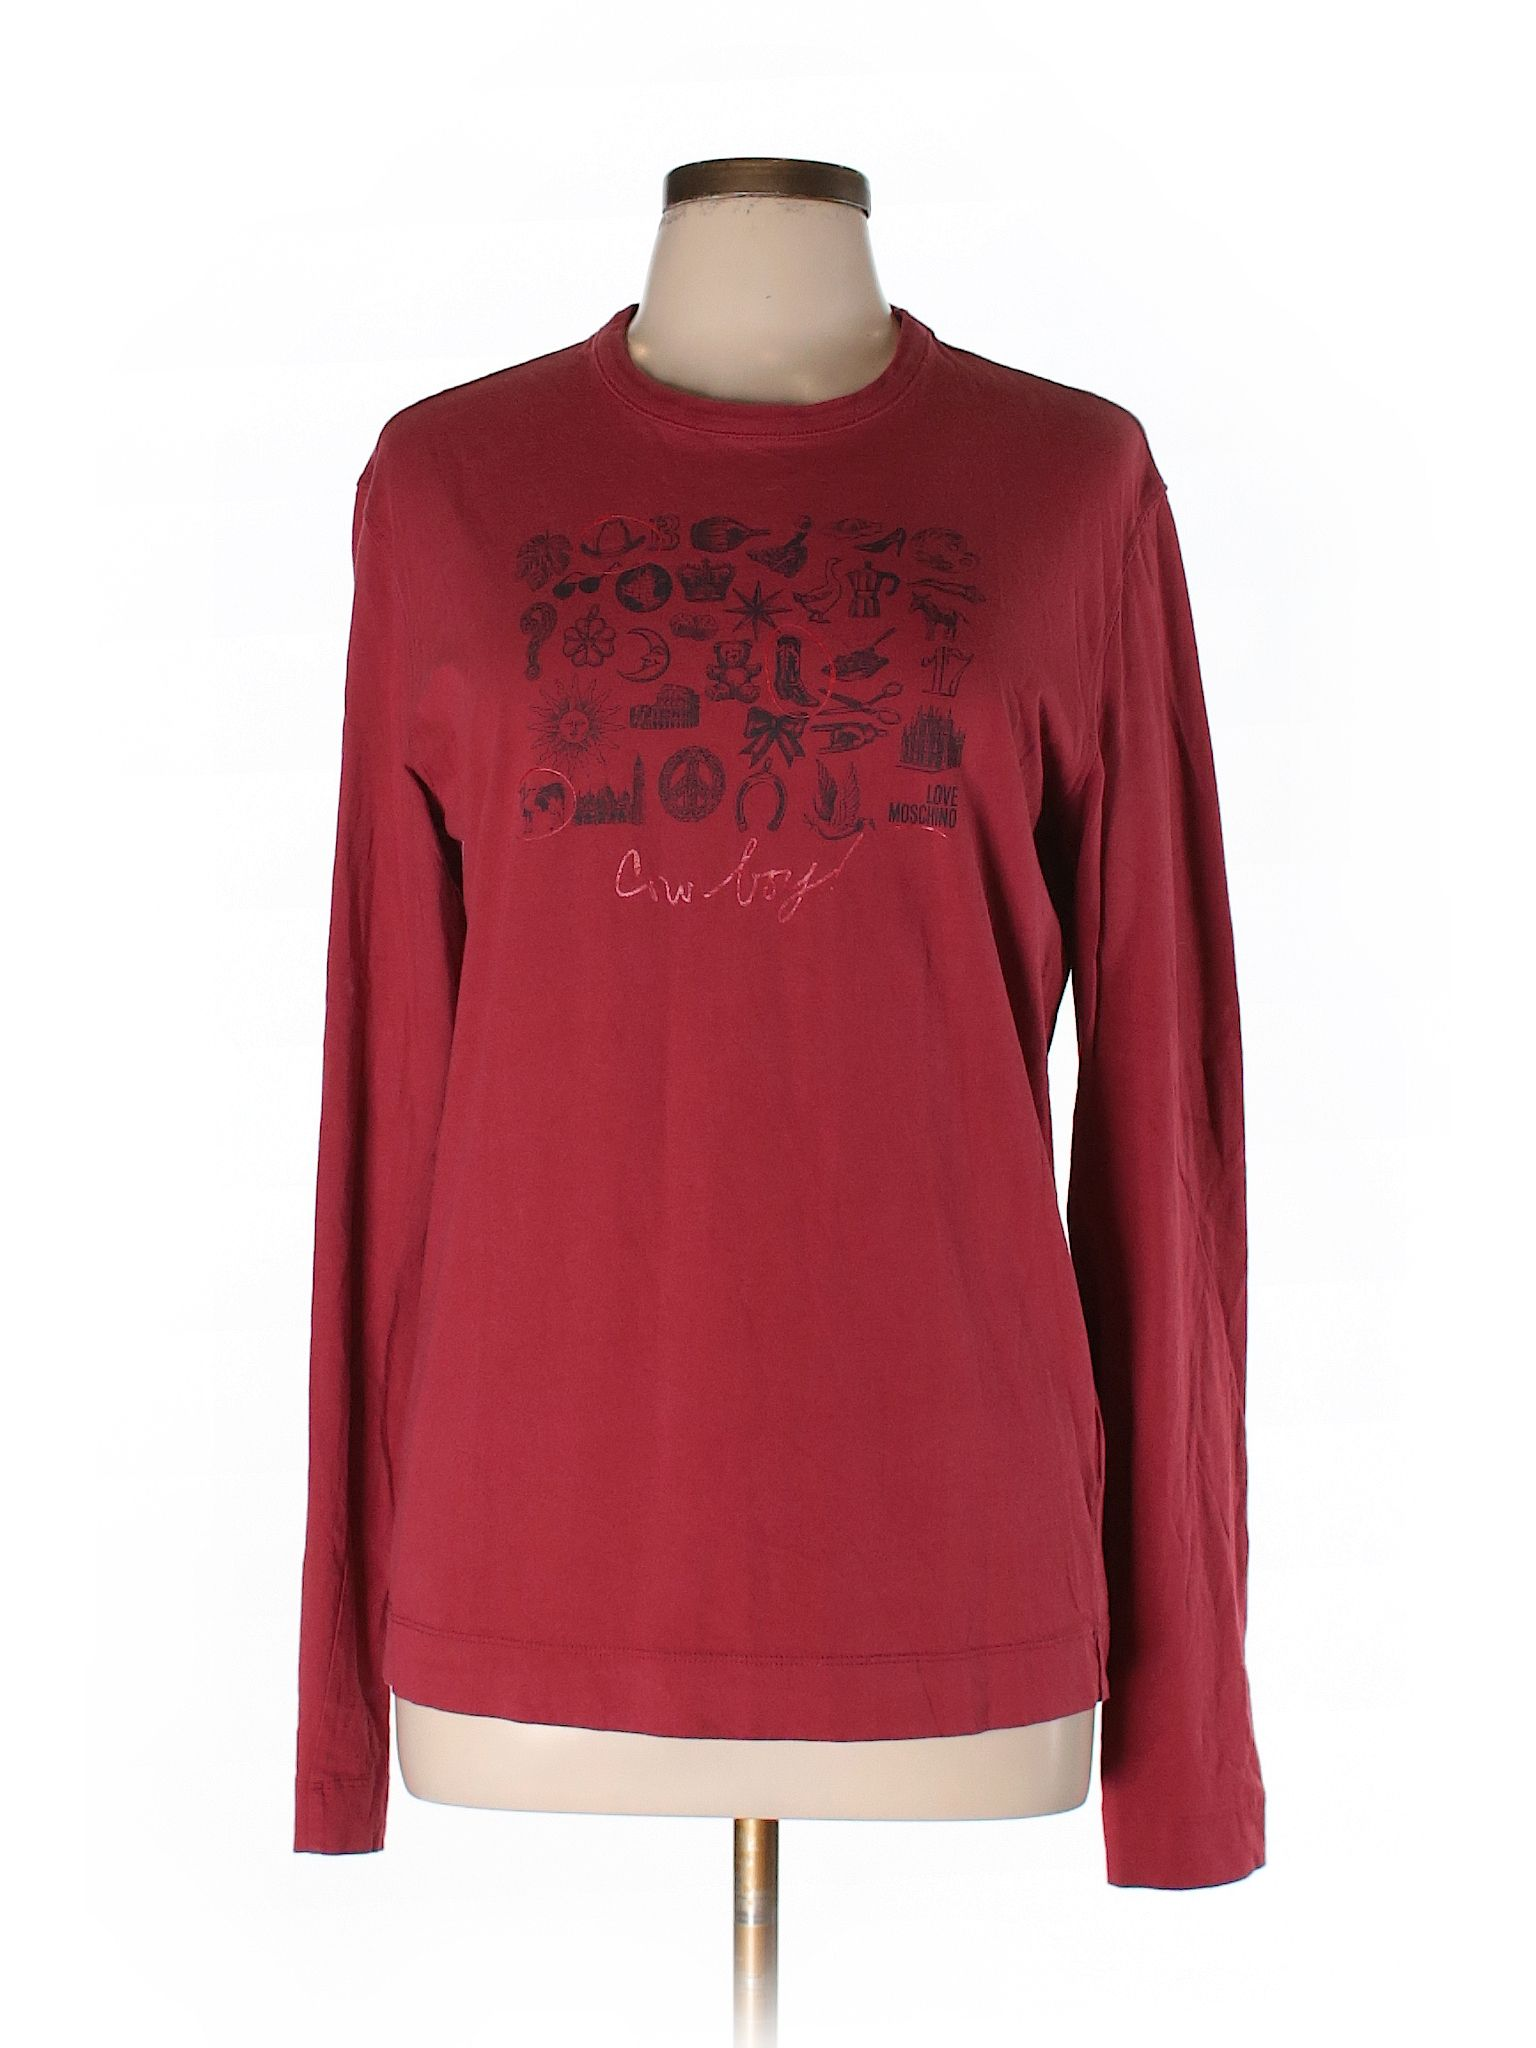 104a696306f6a Long Sleeve T-Shirt | Products | Moschino, Long sleeve, T shirt